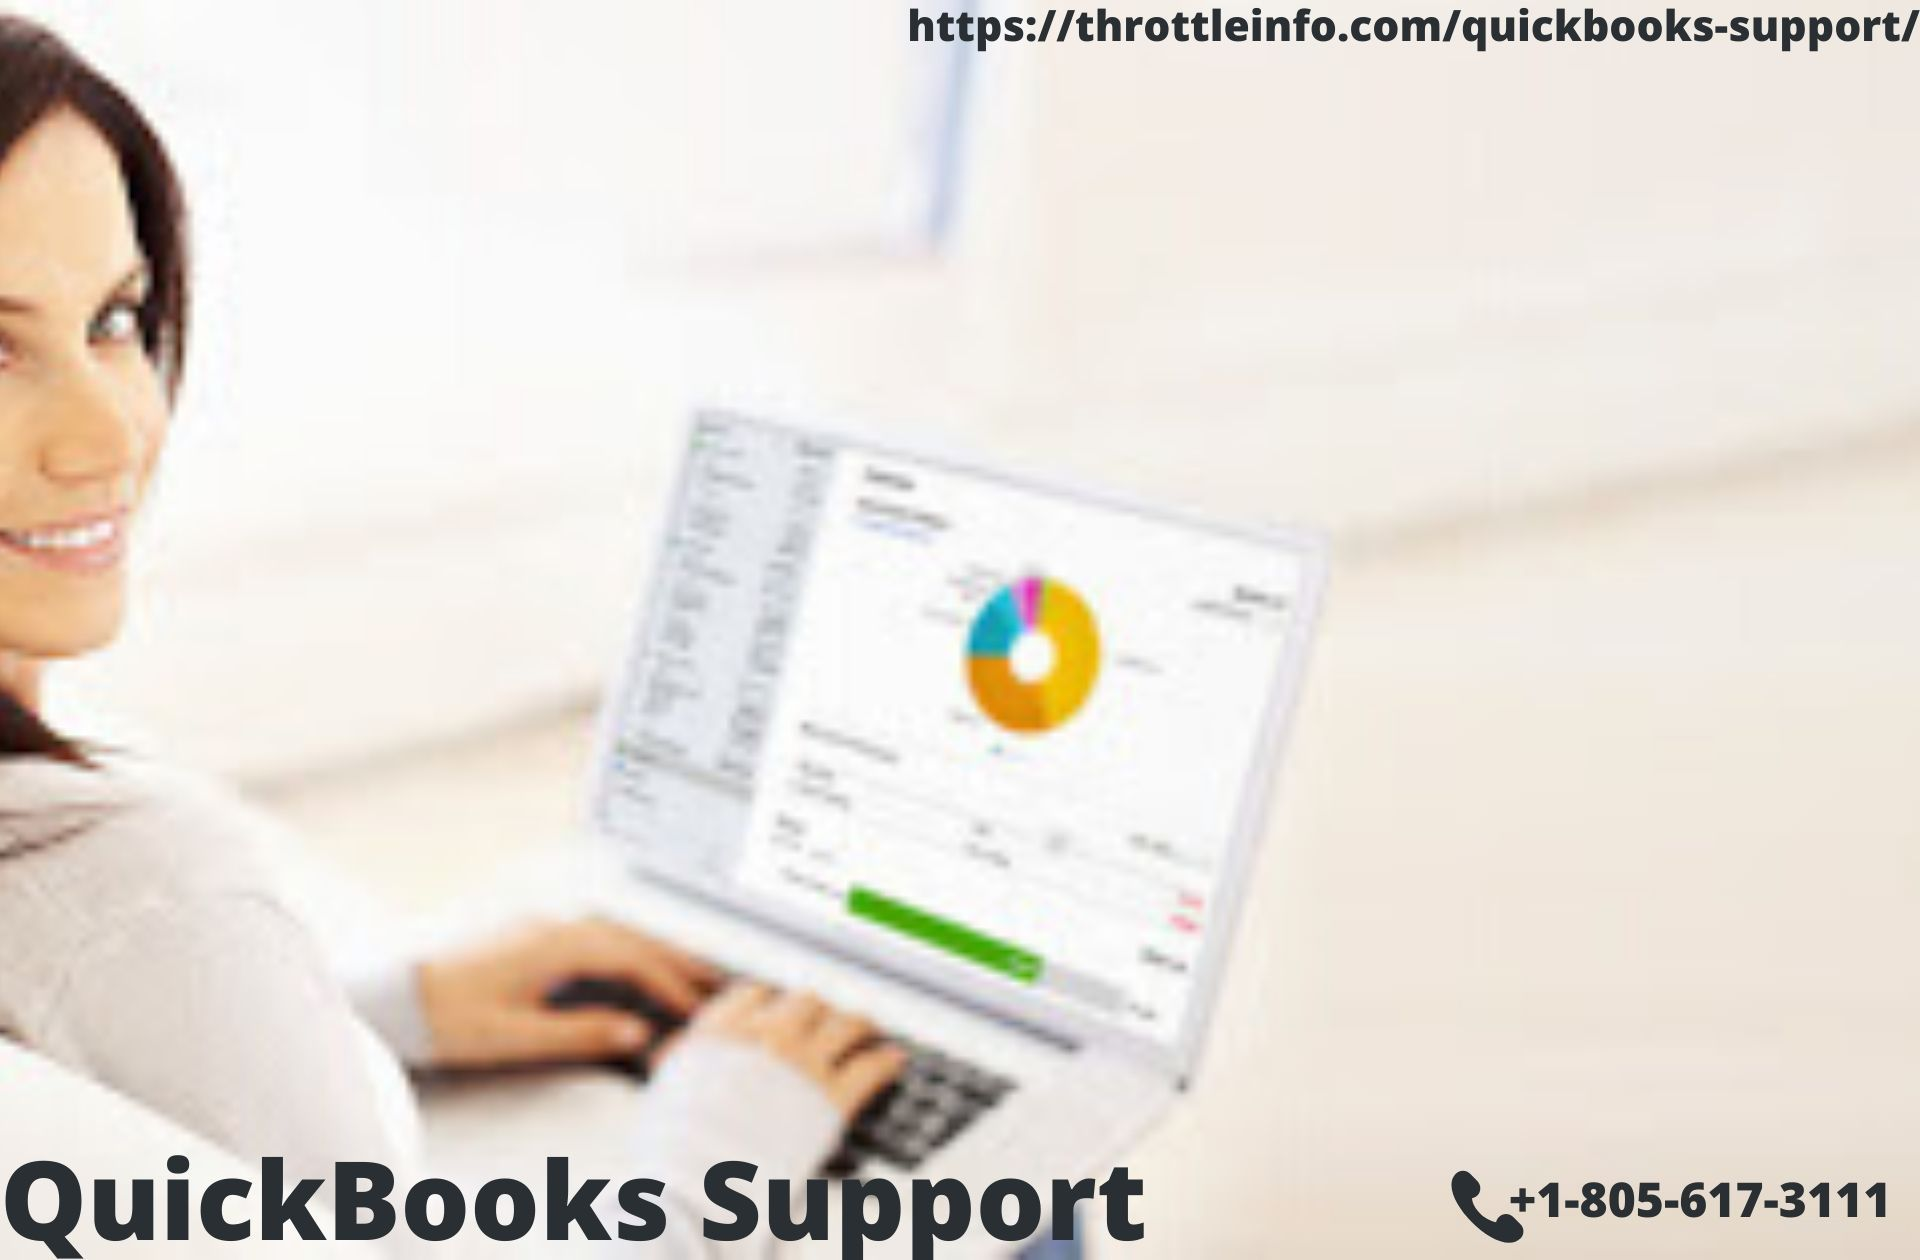 QuickBooks Support is financial accounting software